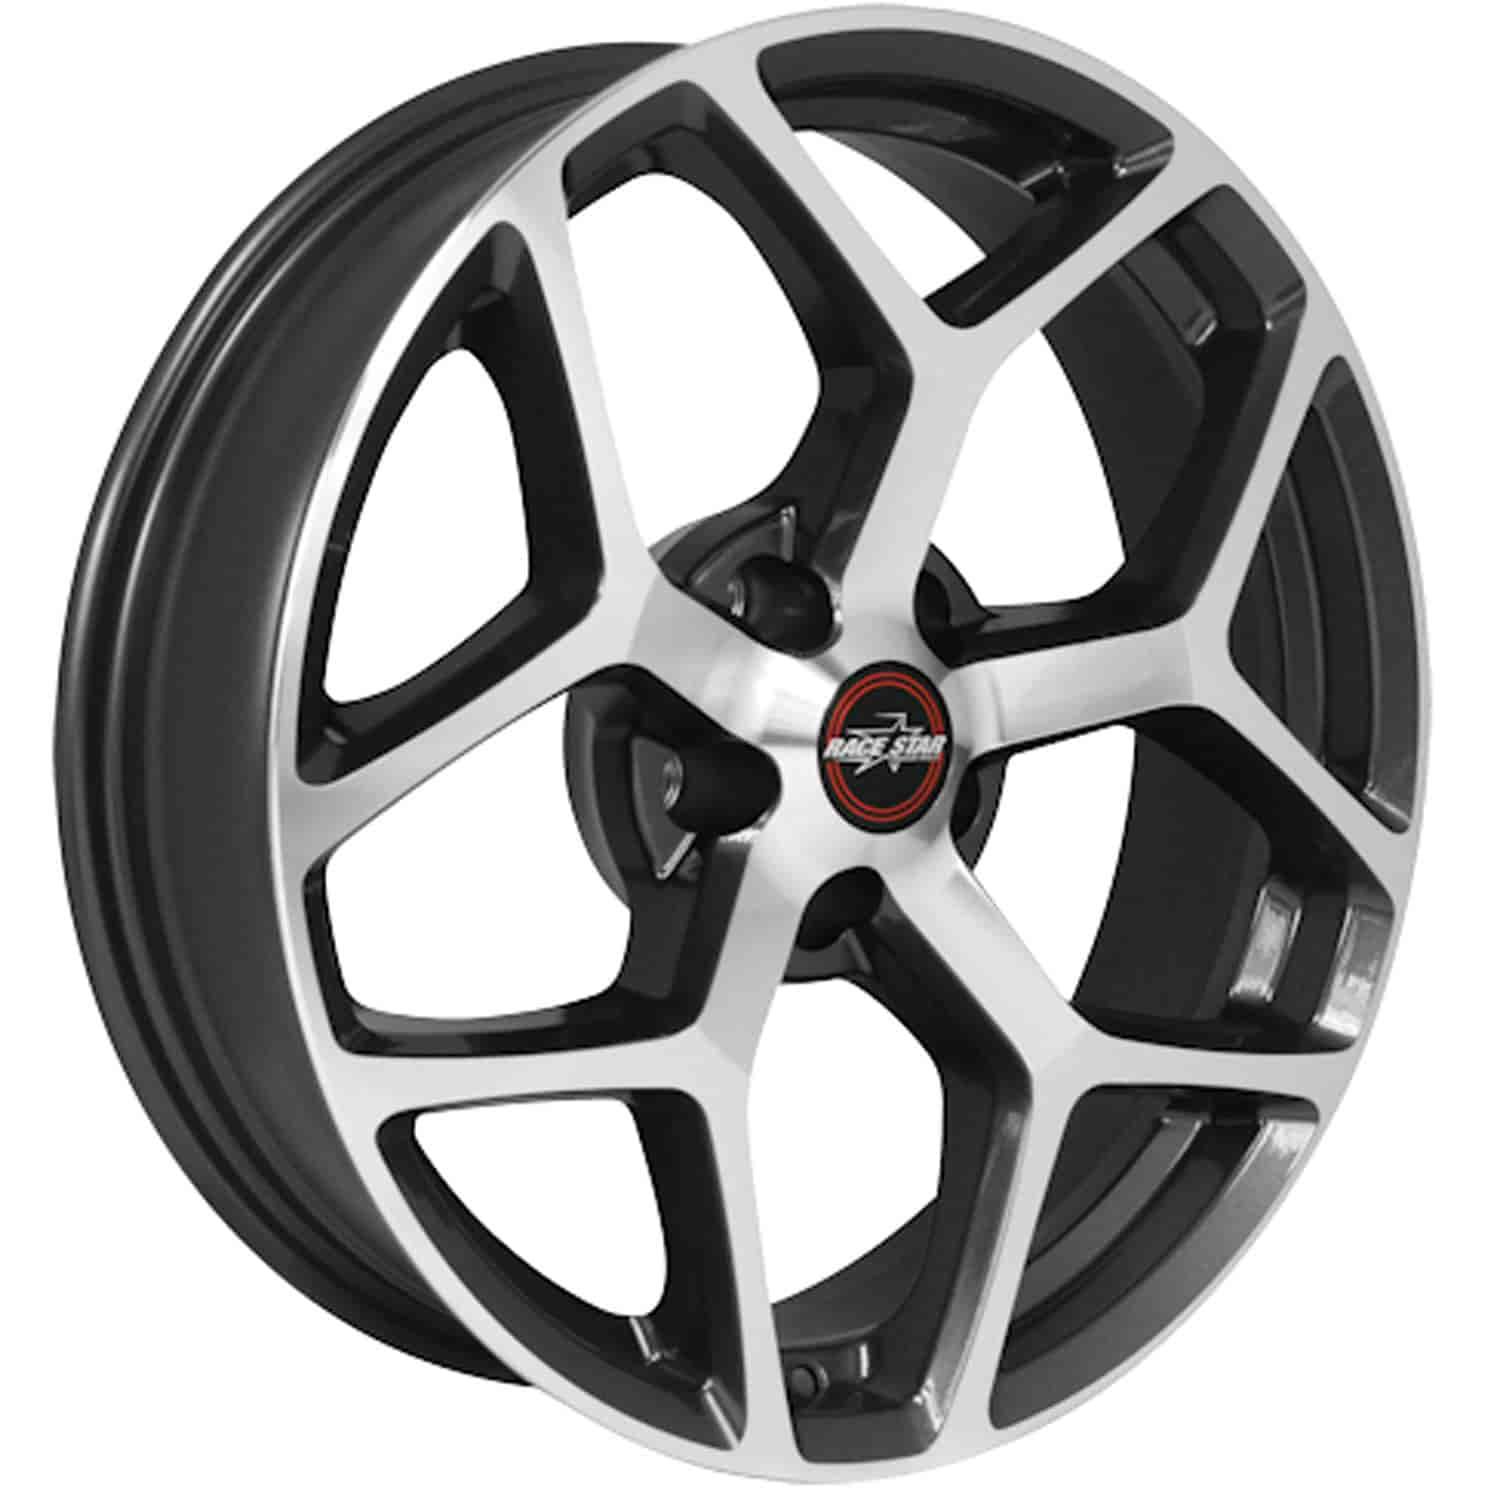 Race Star Wheels 95-745242GP